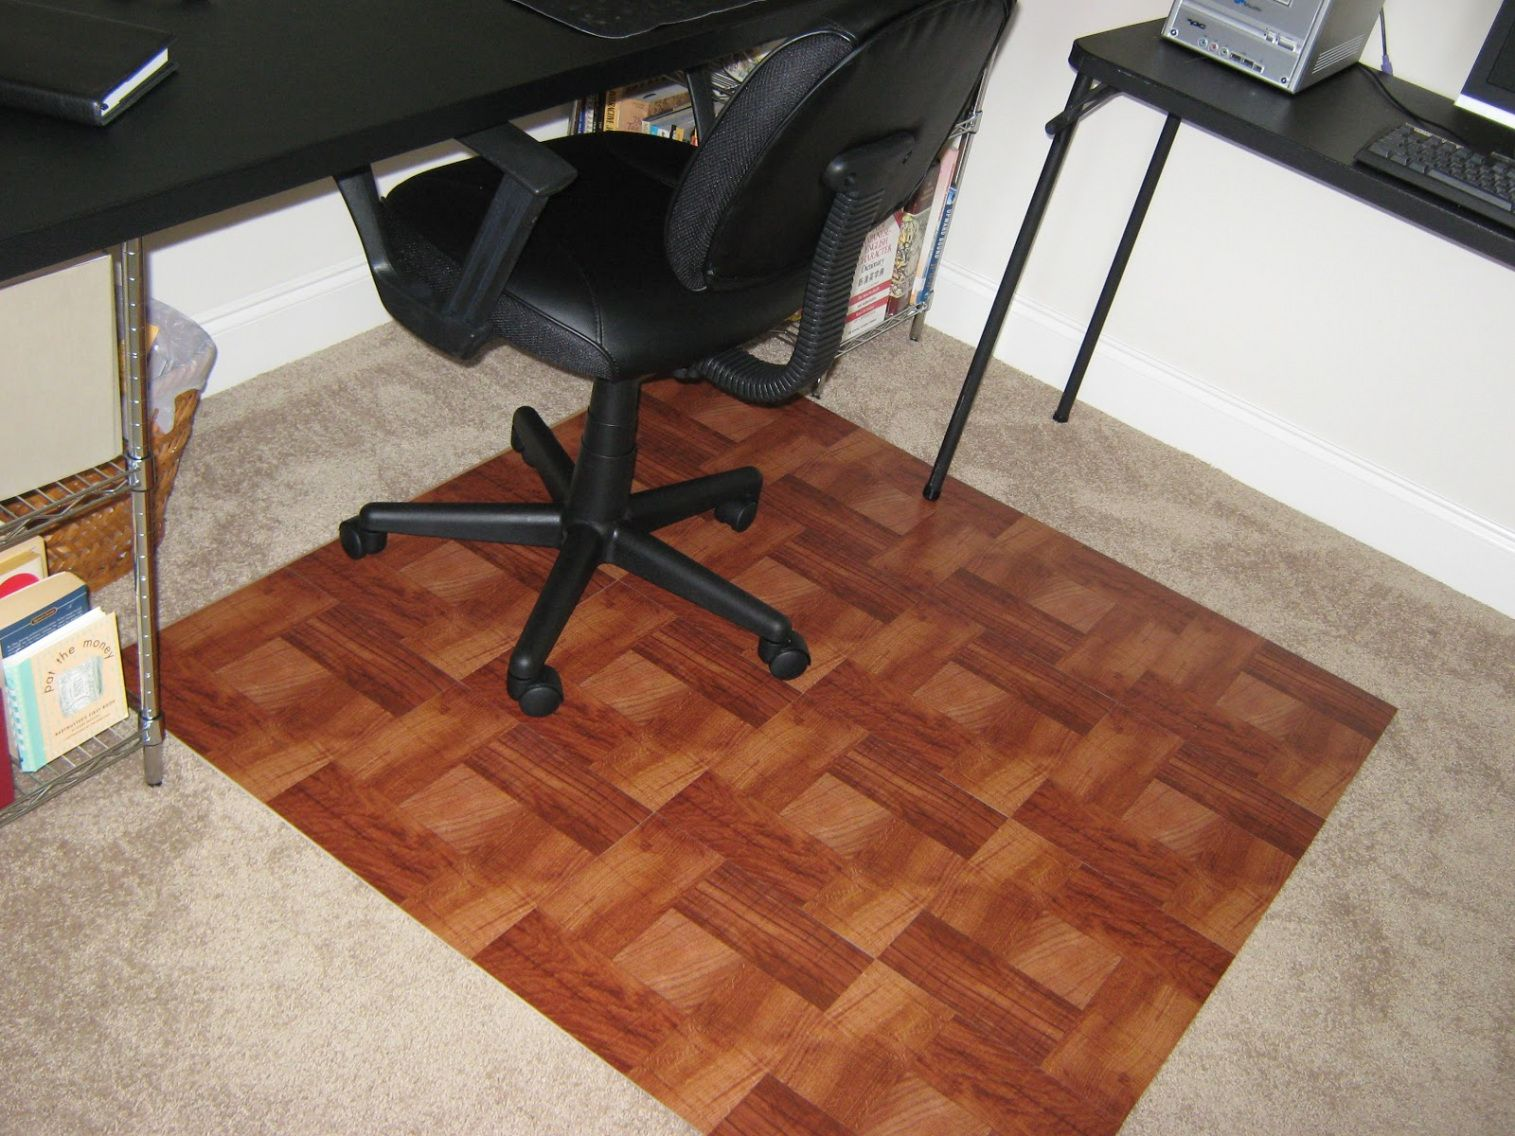 Plastic Mats For Under Office Chairs Expensive Home Furniture Check More At Http